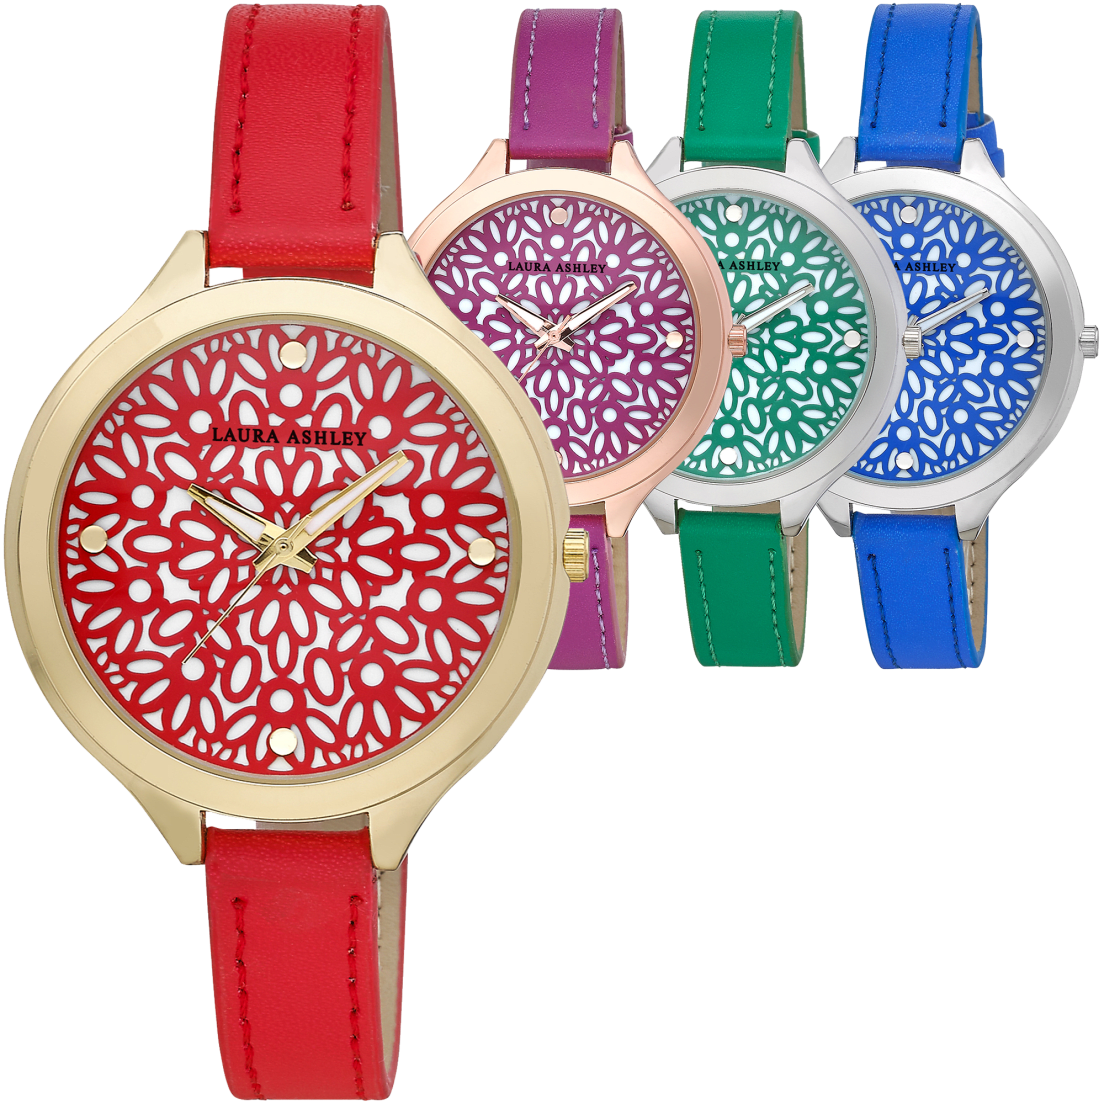 4584d38aad79 Laura Ashley Floral Pattern Watches